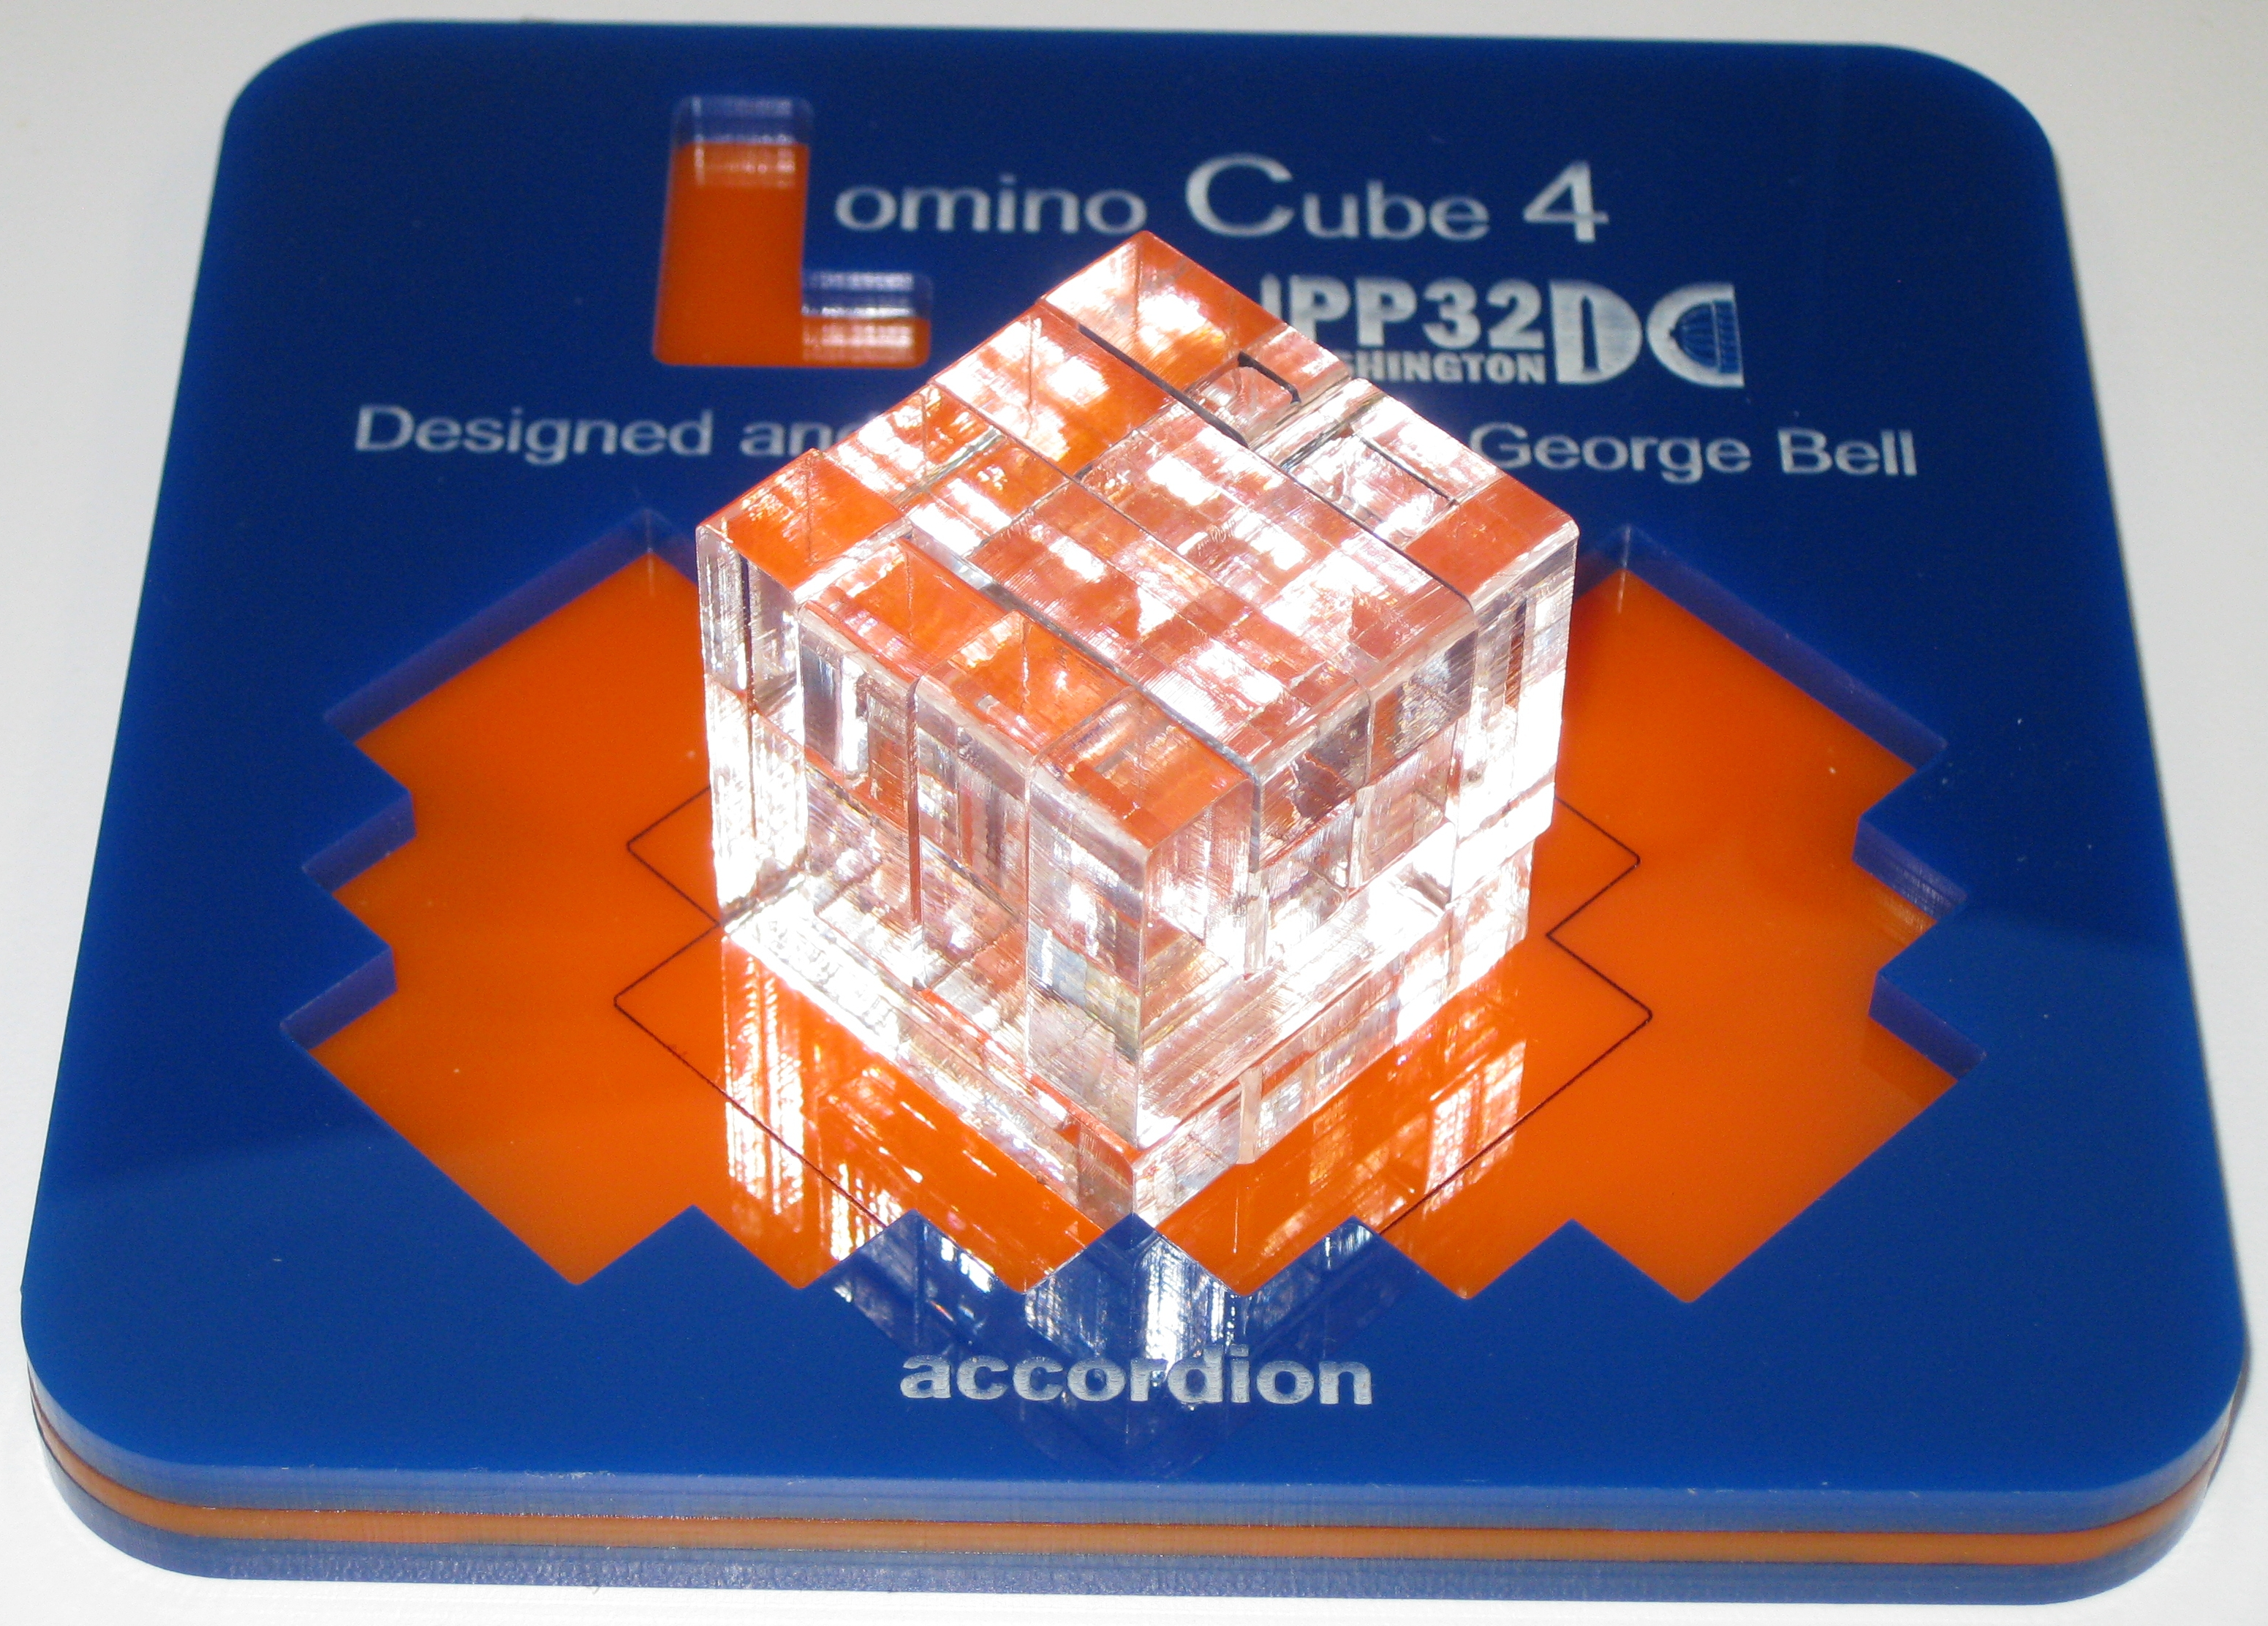 One possible cube solution